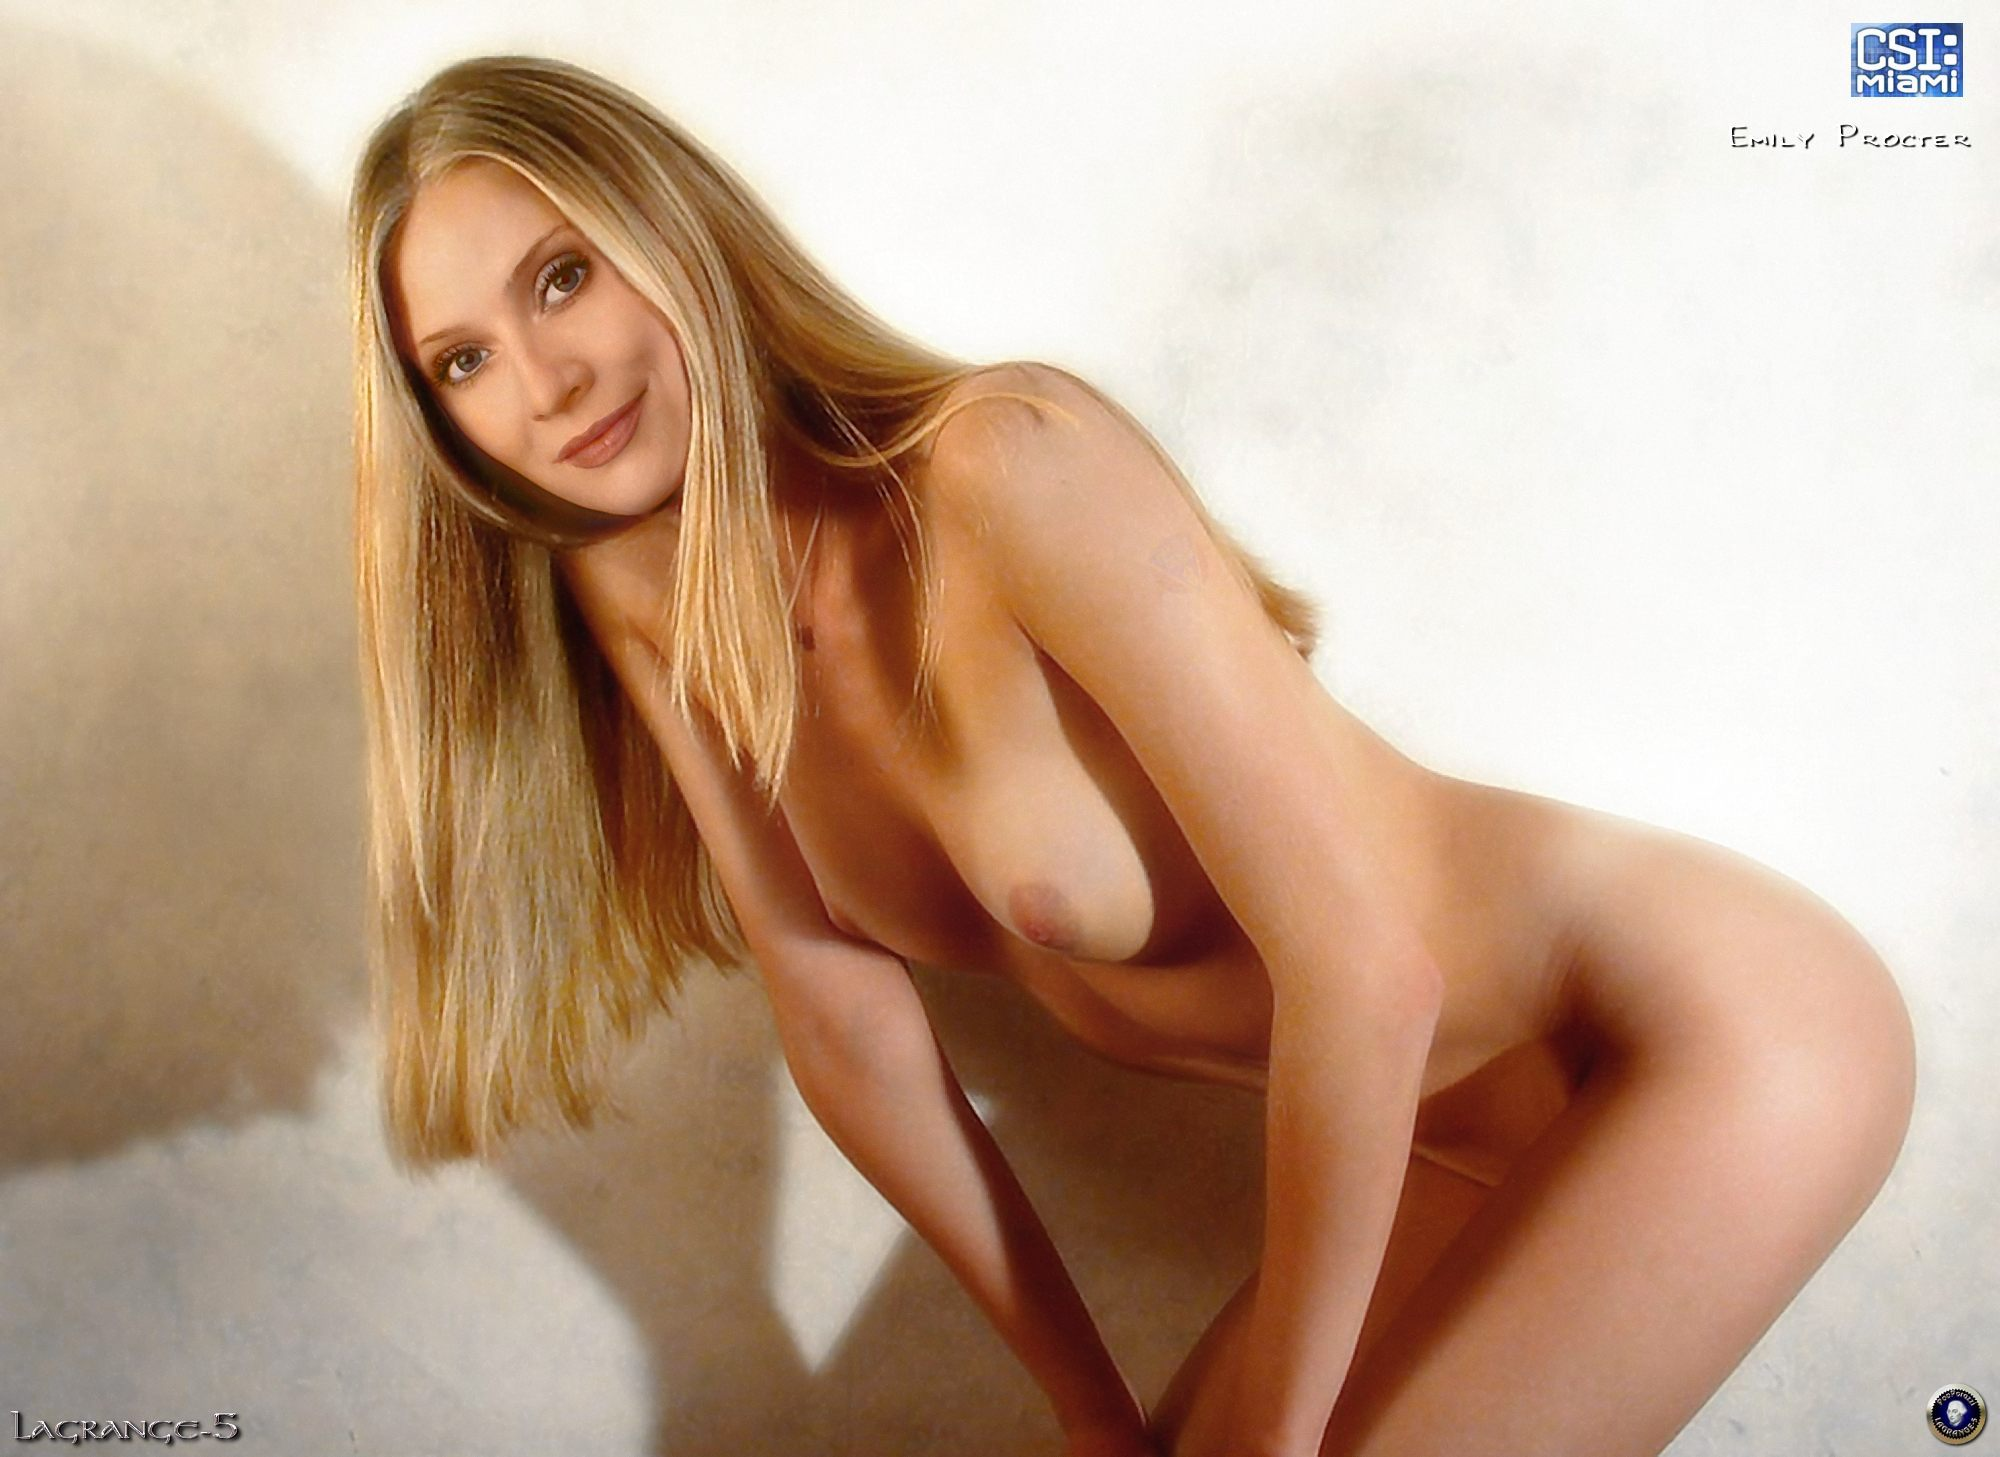 Emily procter naked fakes, french anal sex crying